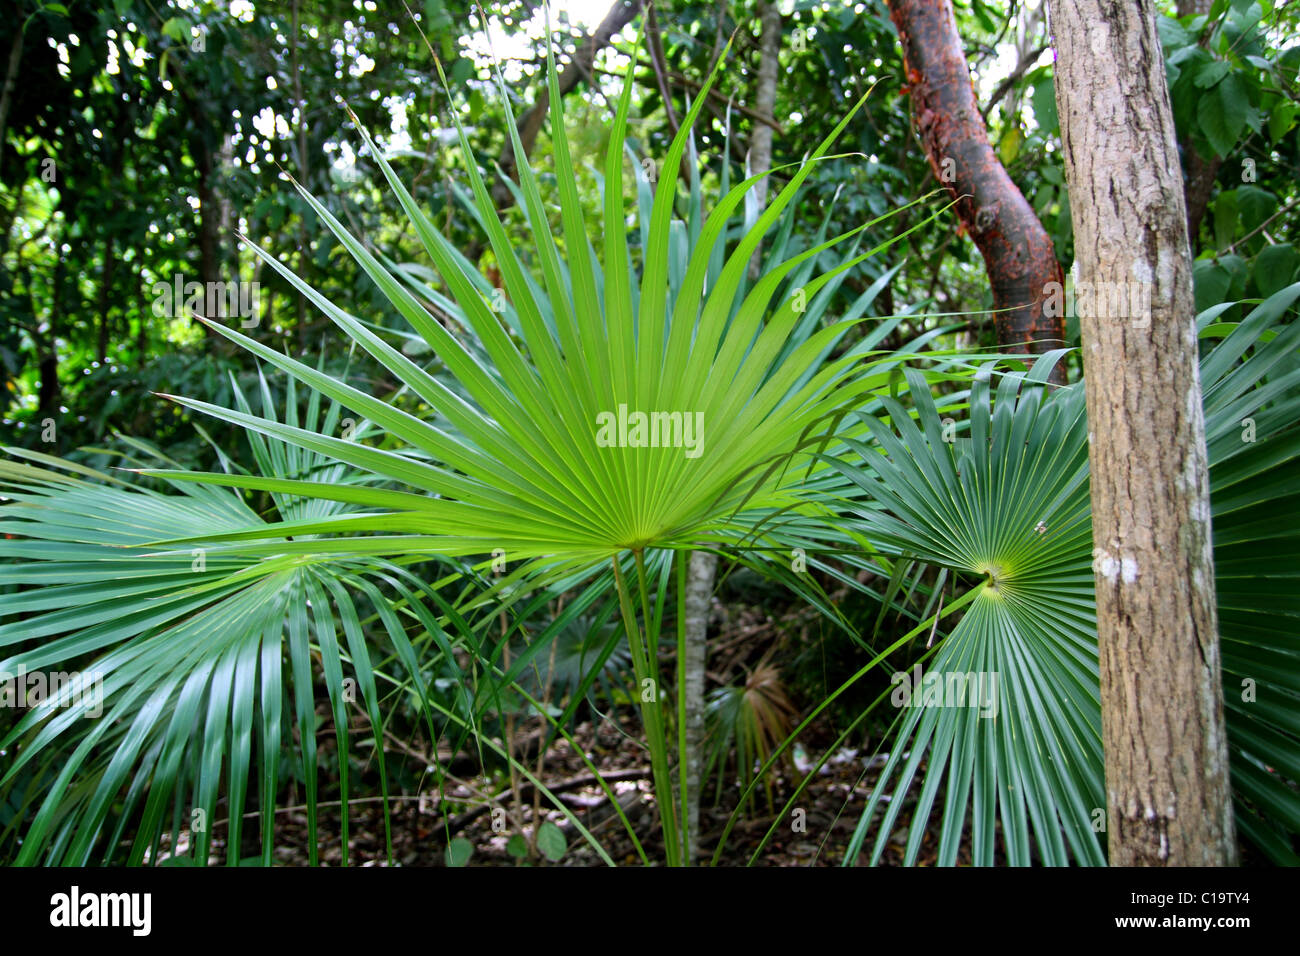 chit palm tree in jungle rain forest in Mayan Riviera Mexico - Stock Image